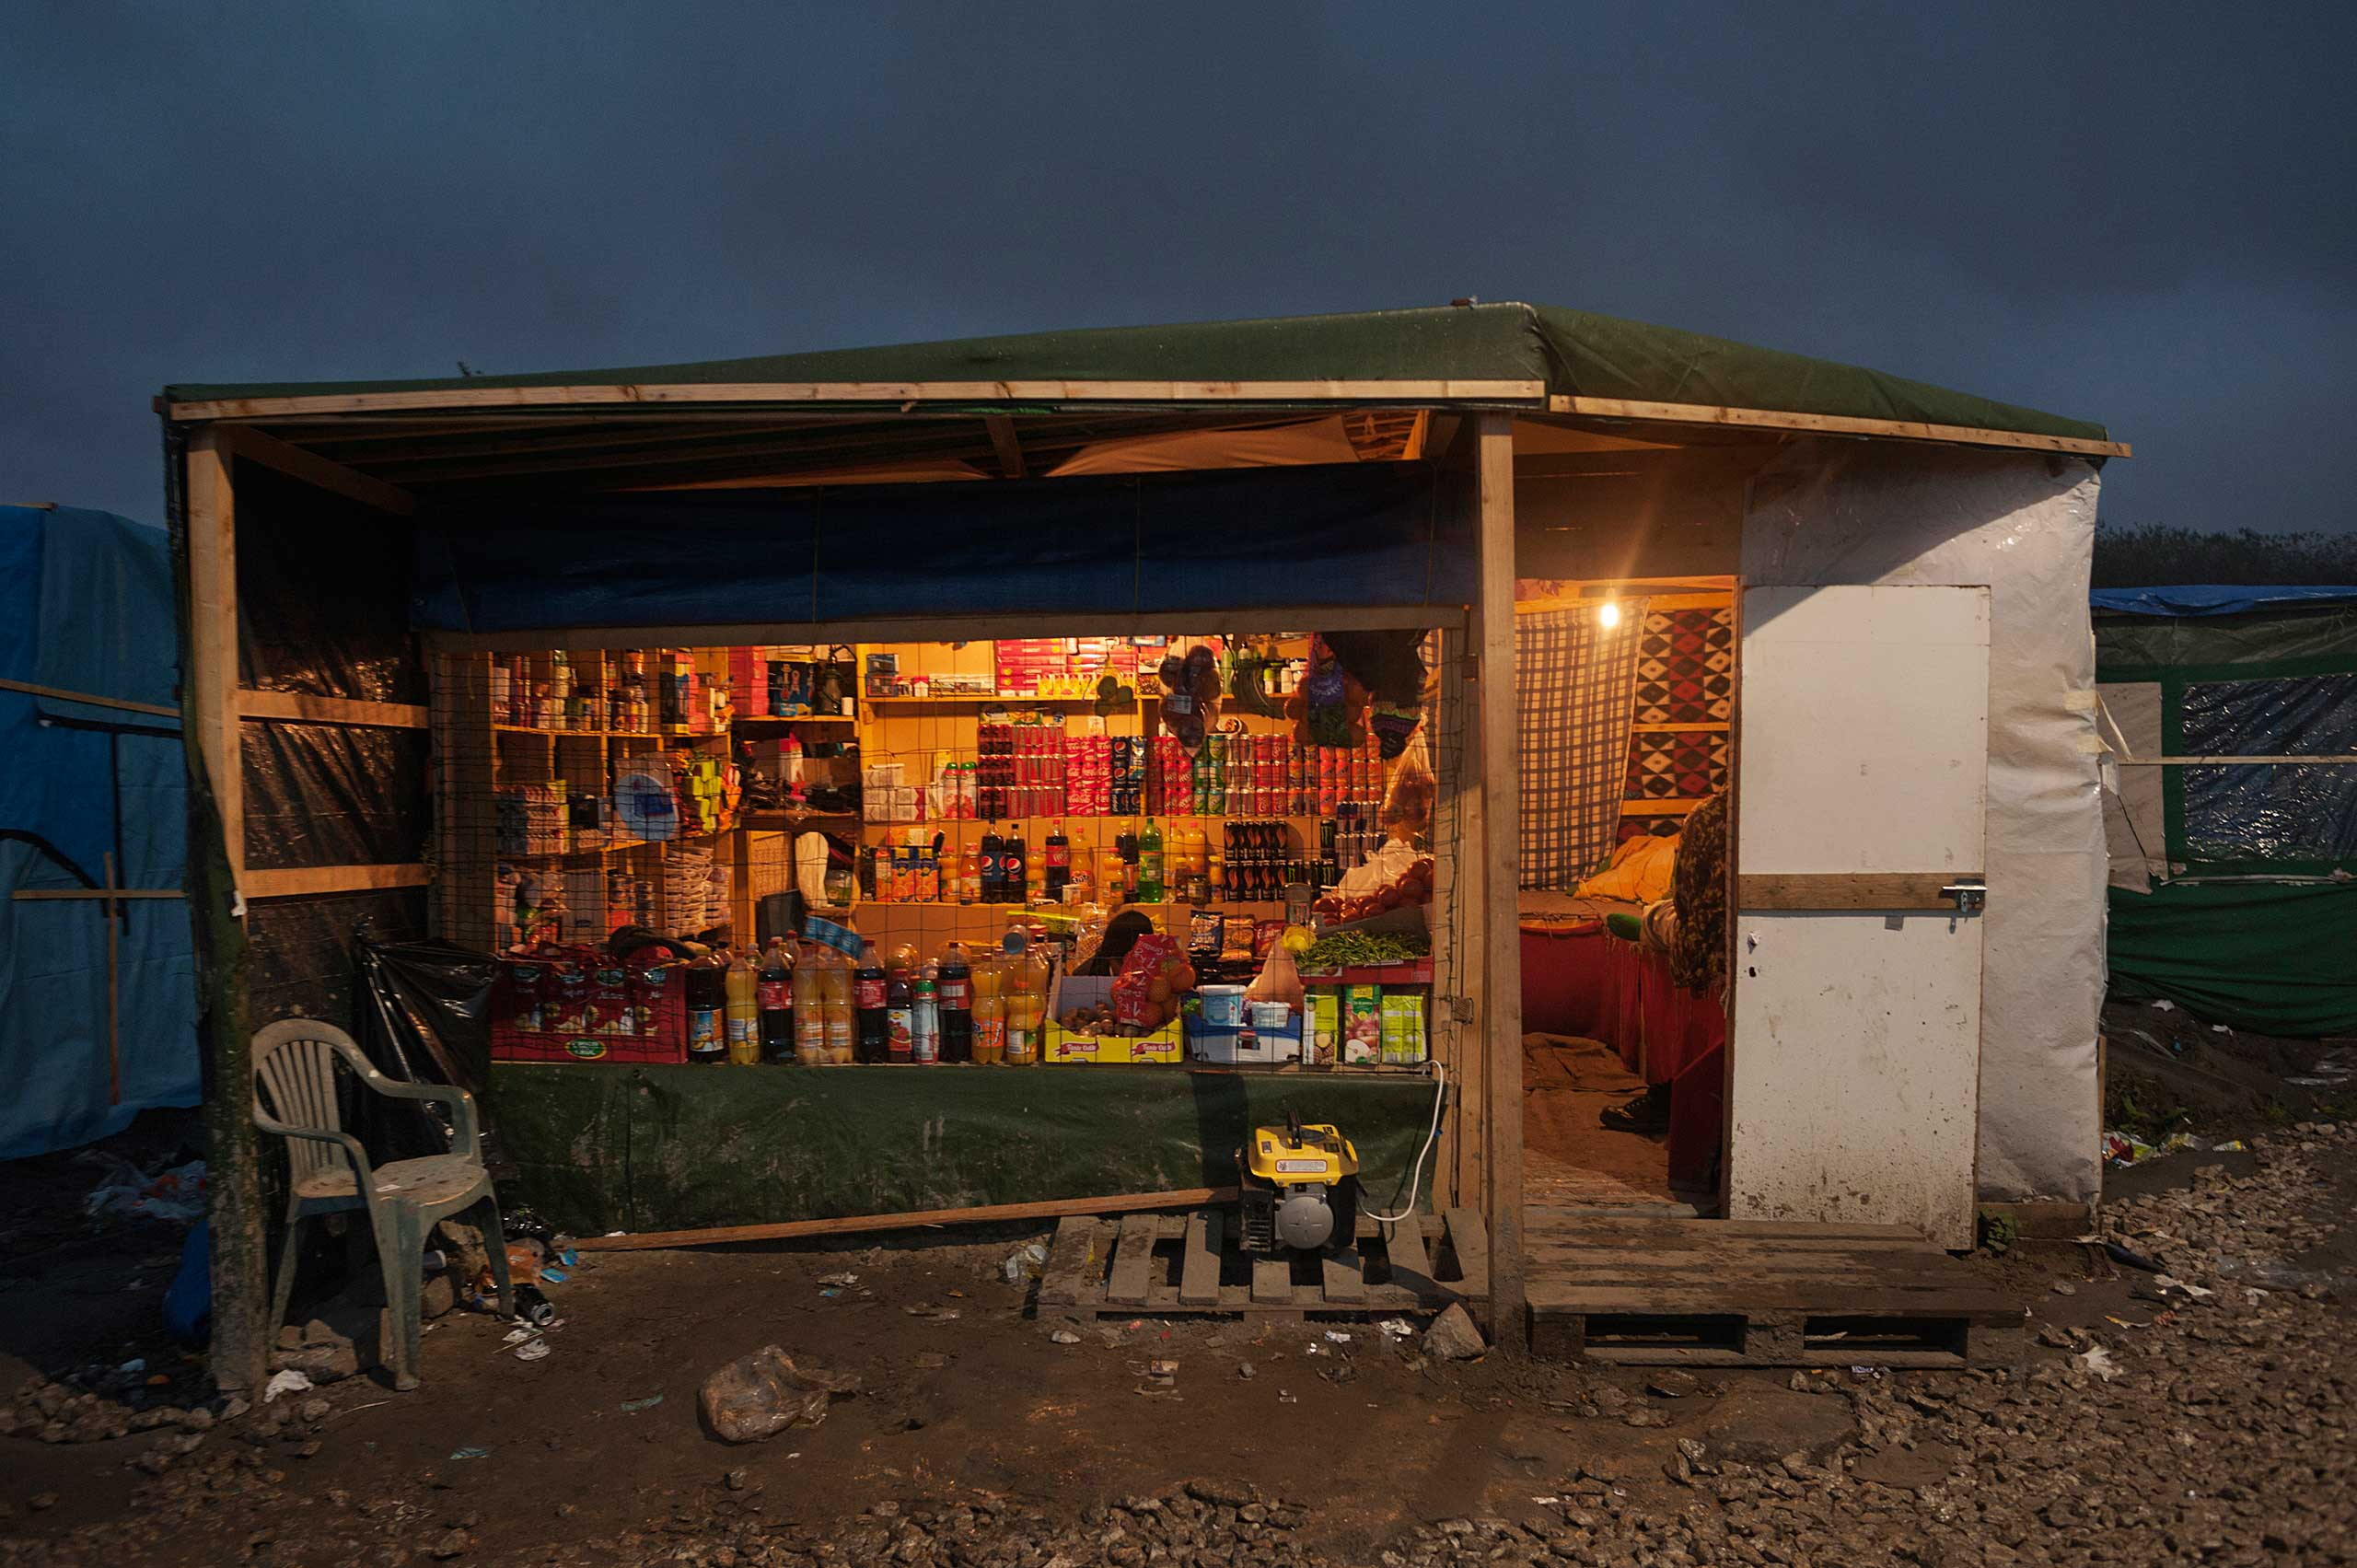 Afghan shop with sofas for the customers in Calais, France on Nov. 4, 2015.